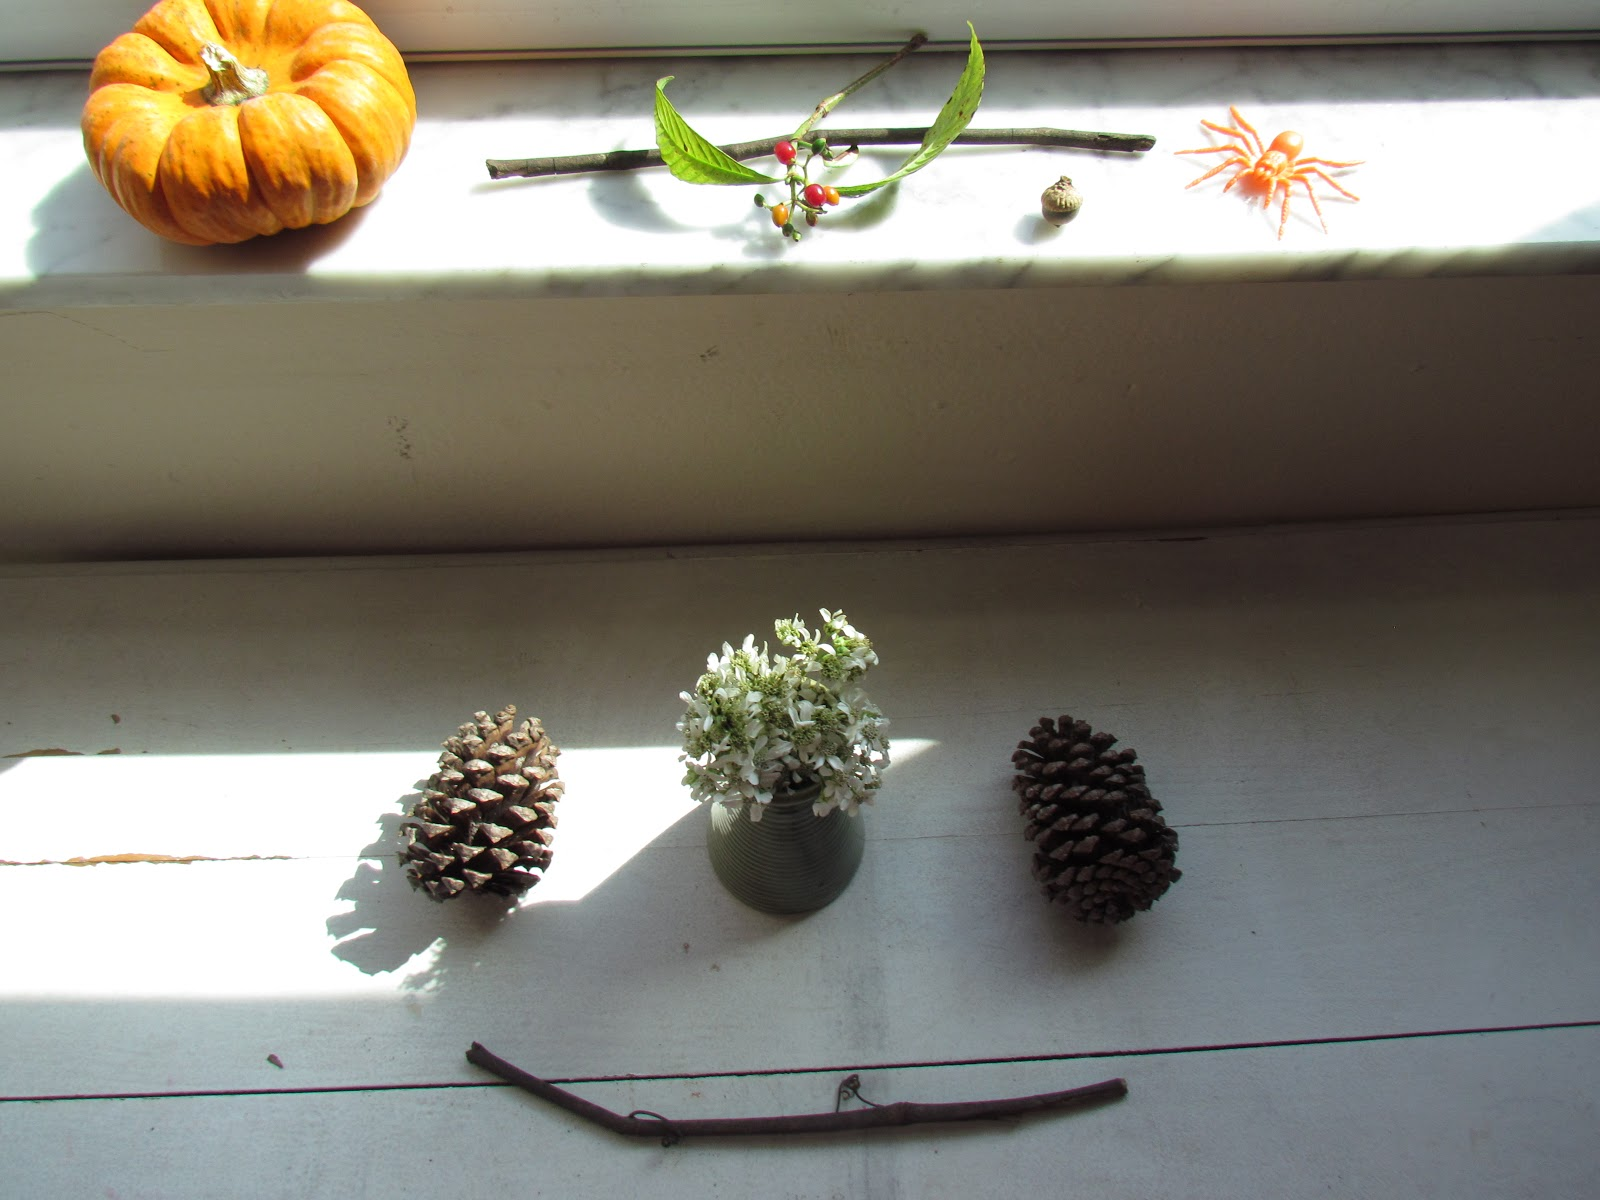 A pumpkin windowsill display and fall festive decorations, Halloween decorations, and festive fall flat lay, autumn nature art